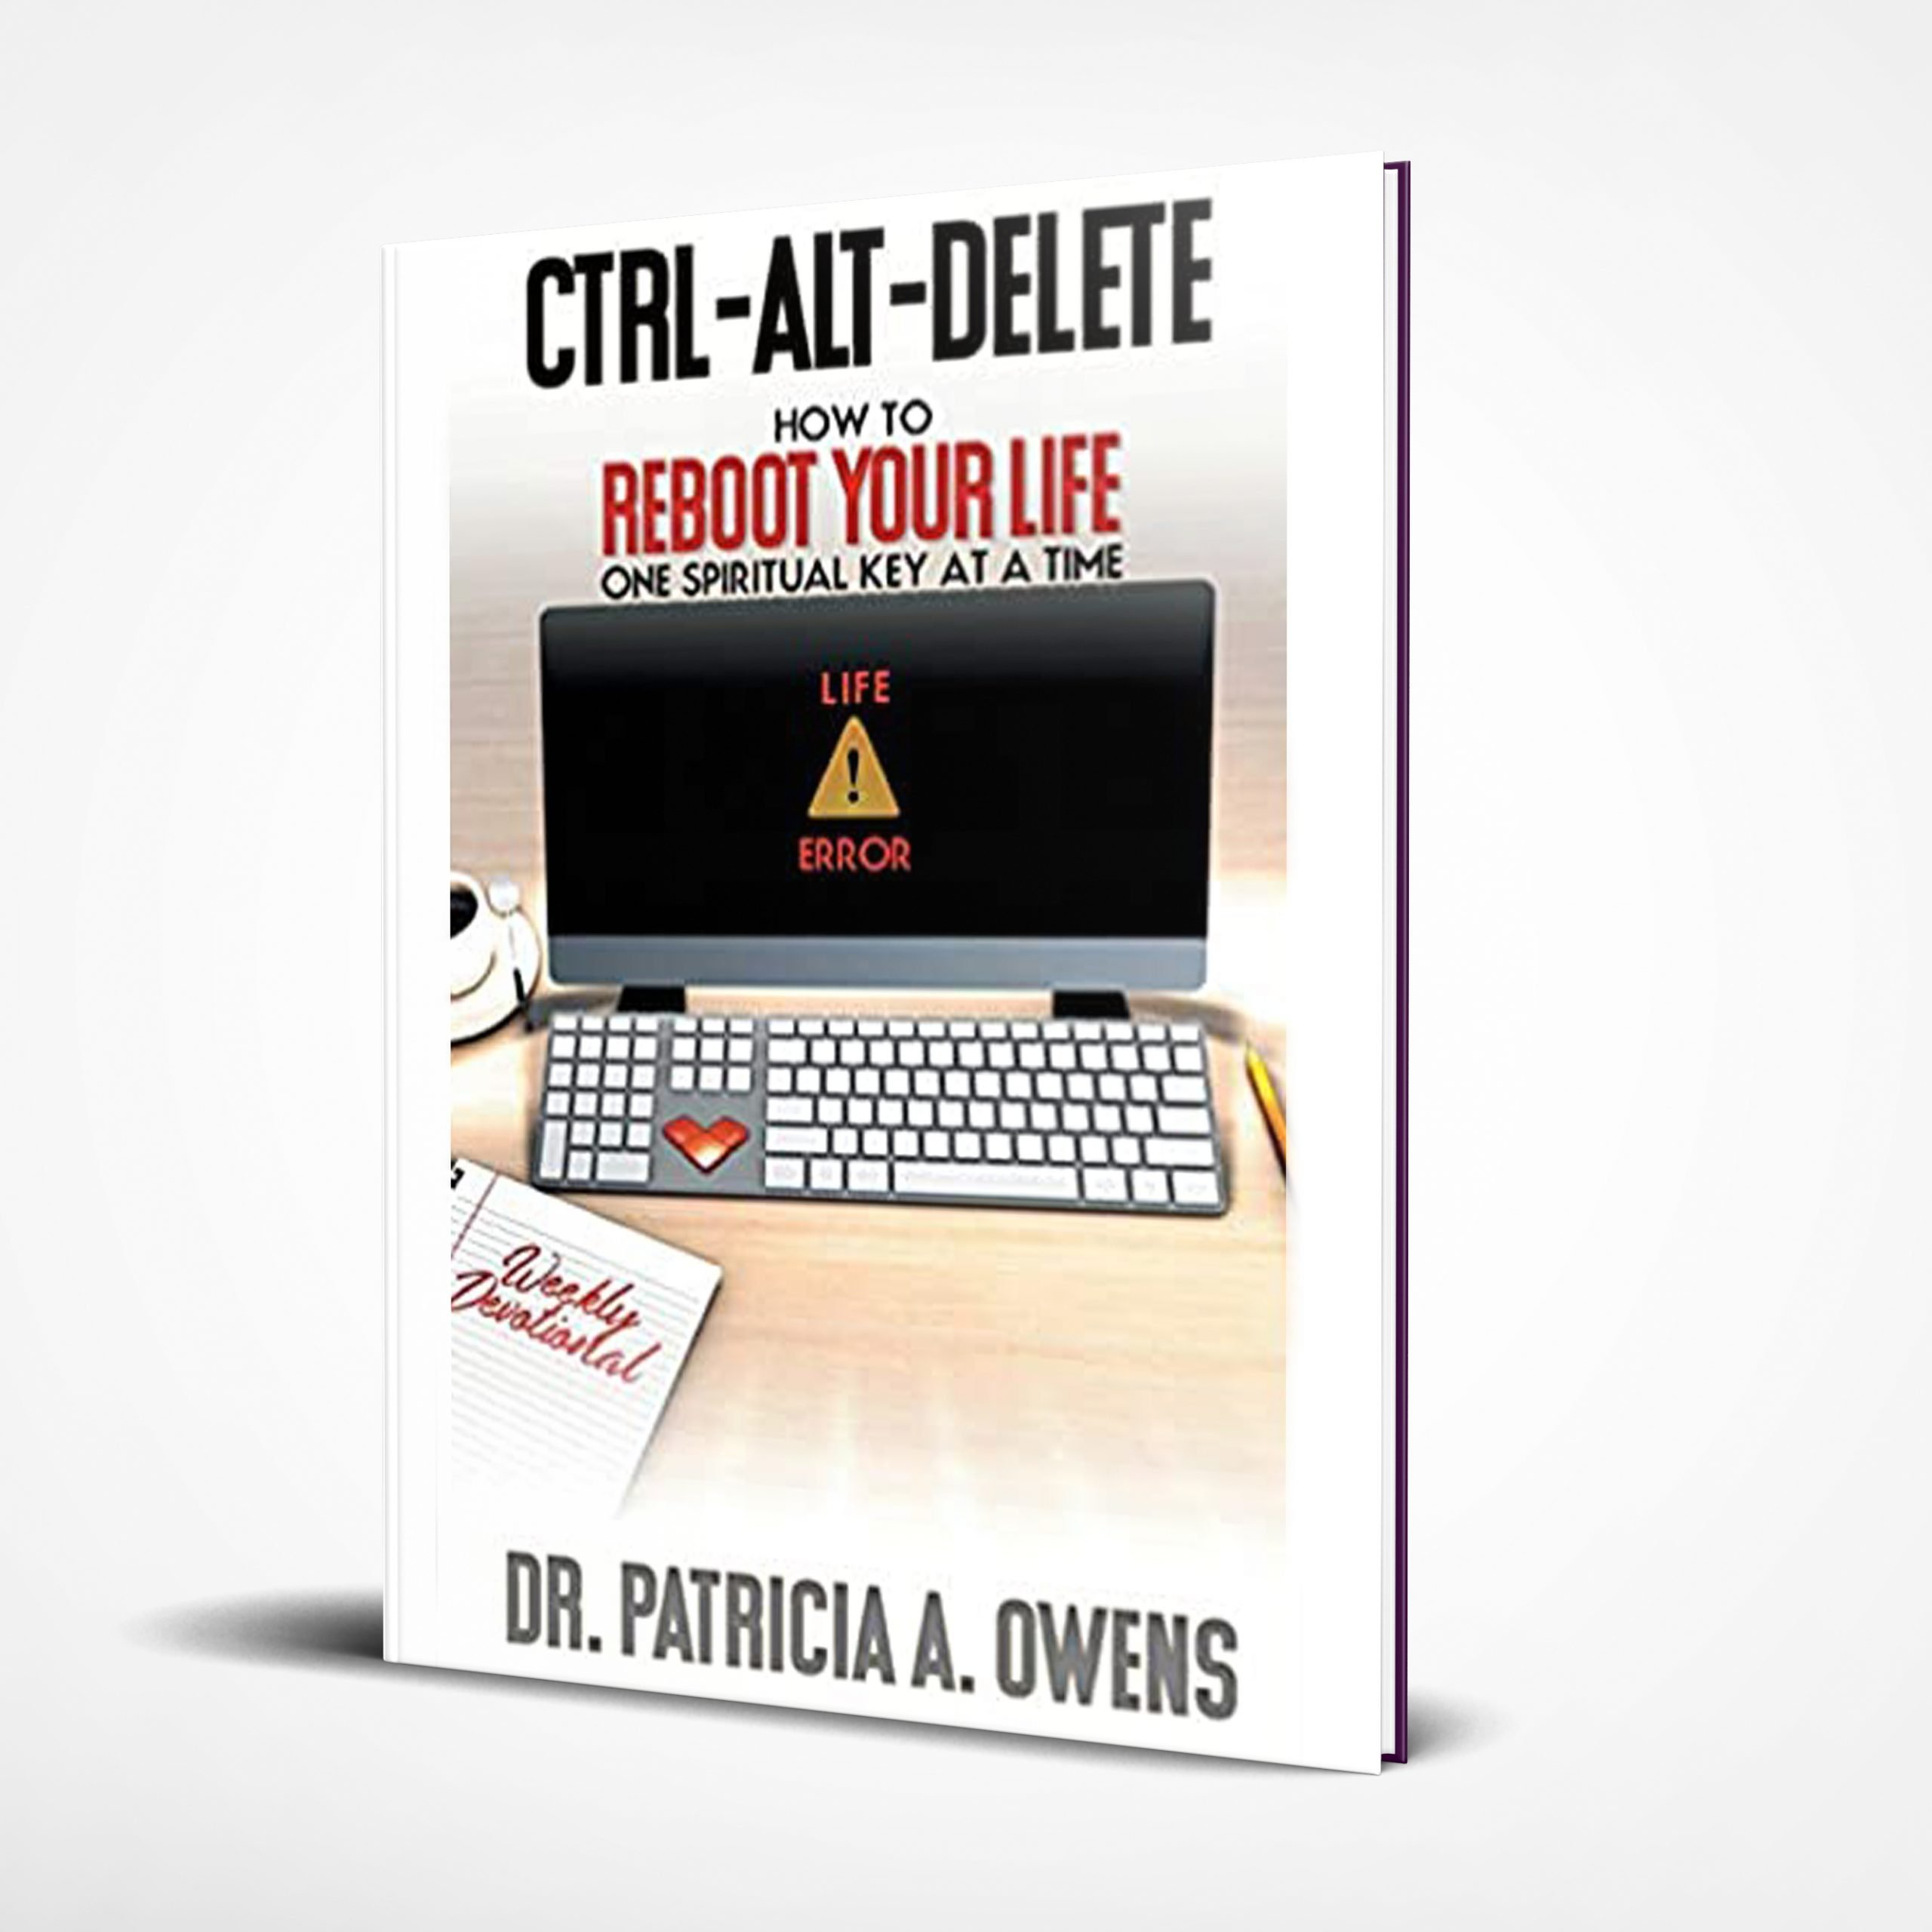 CAD Book Image: How to Reboot Your Life One Spiritual Key at a Time